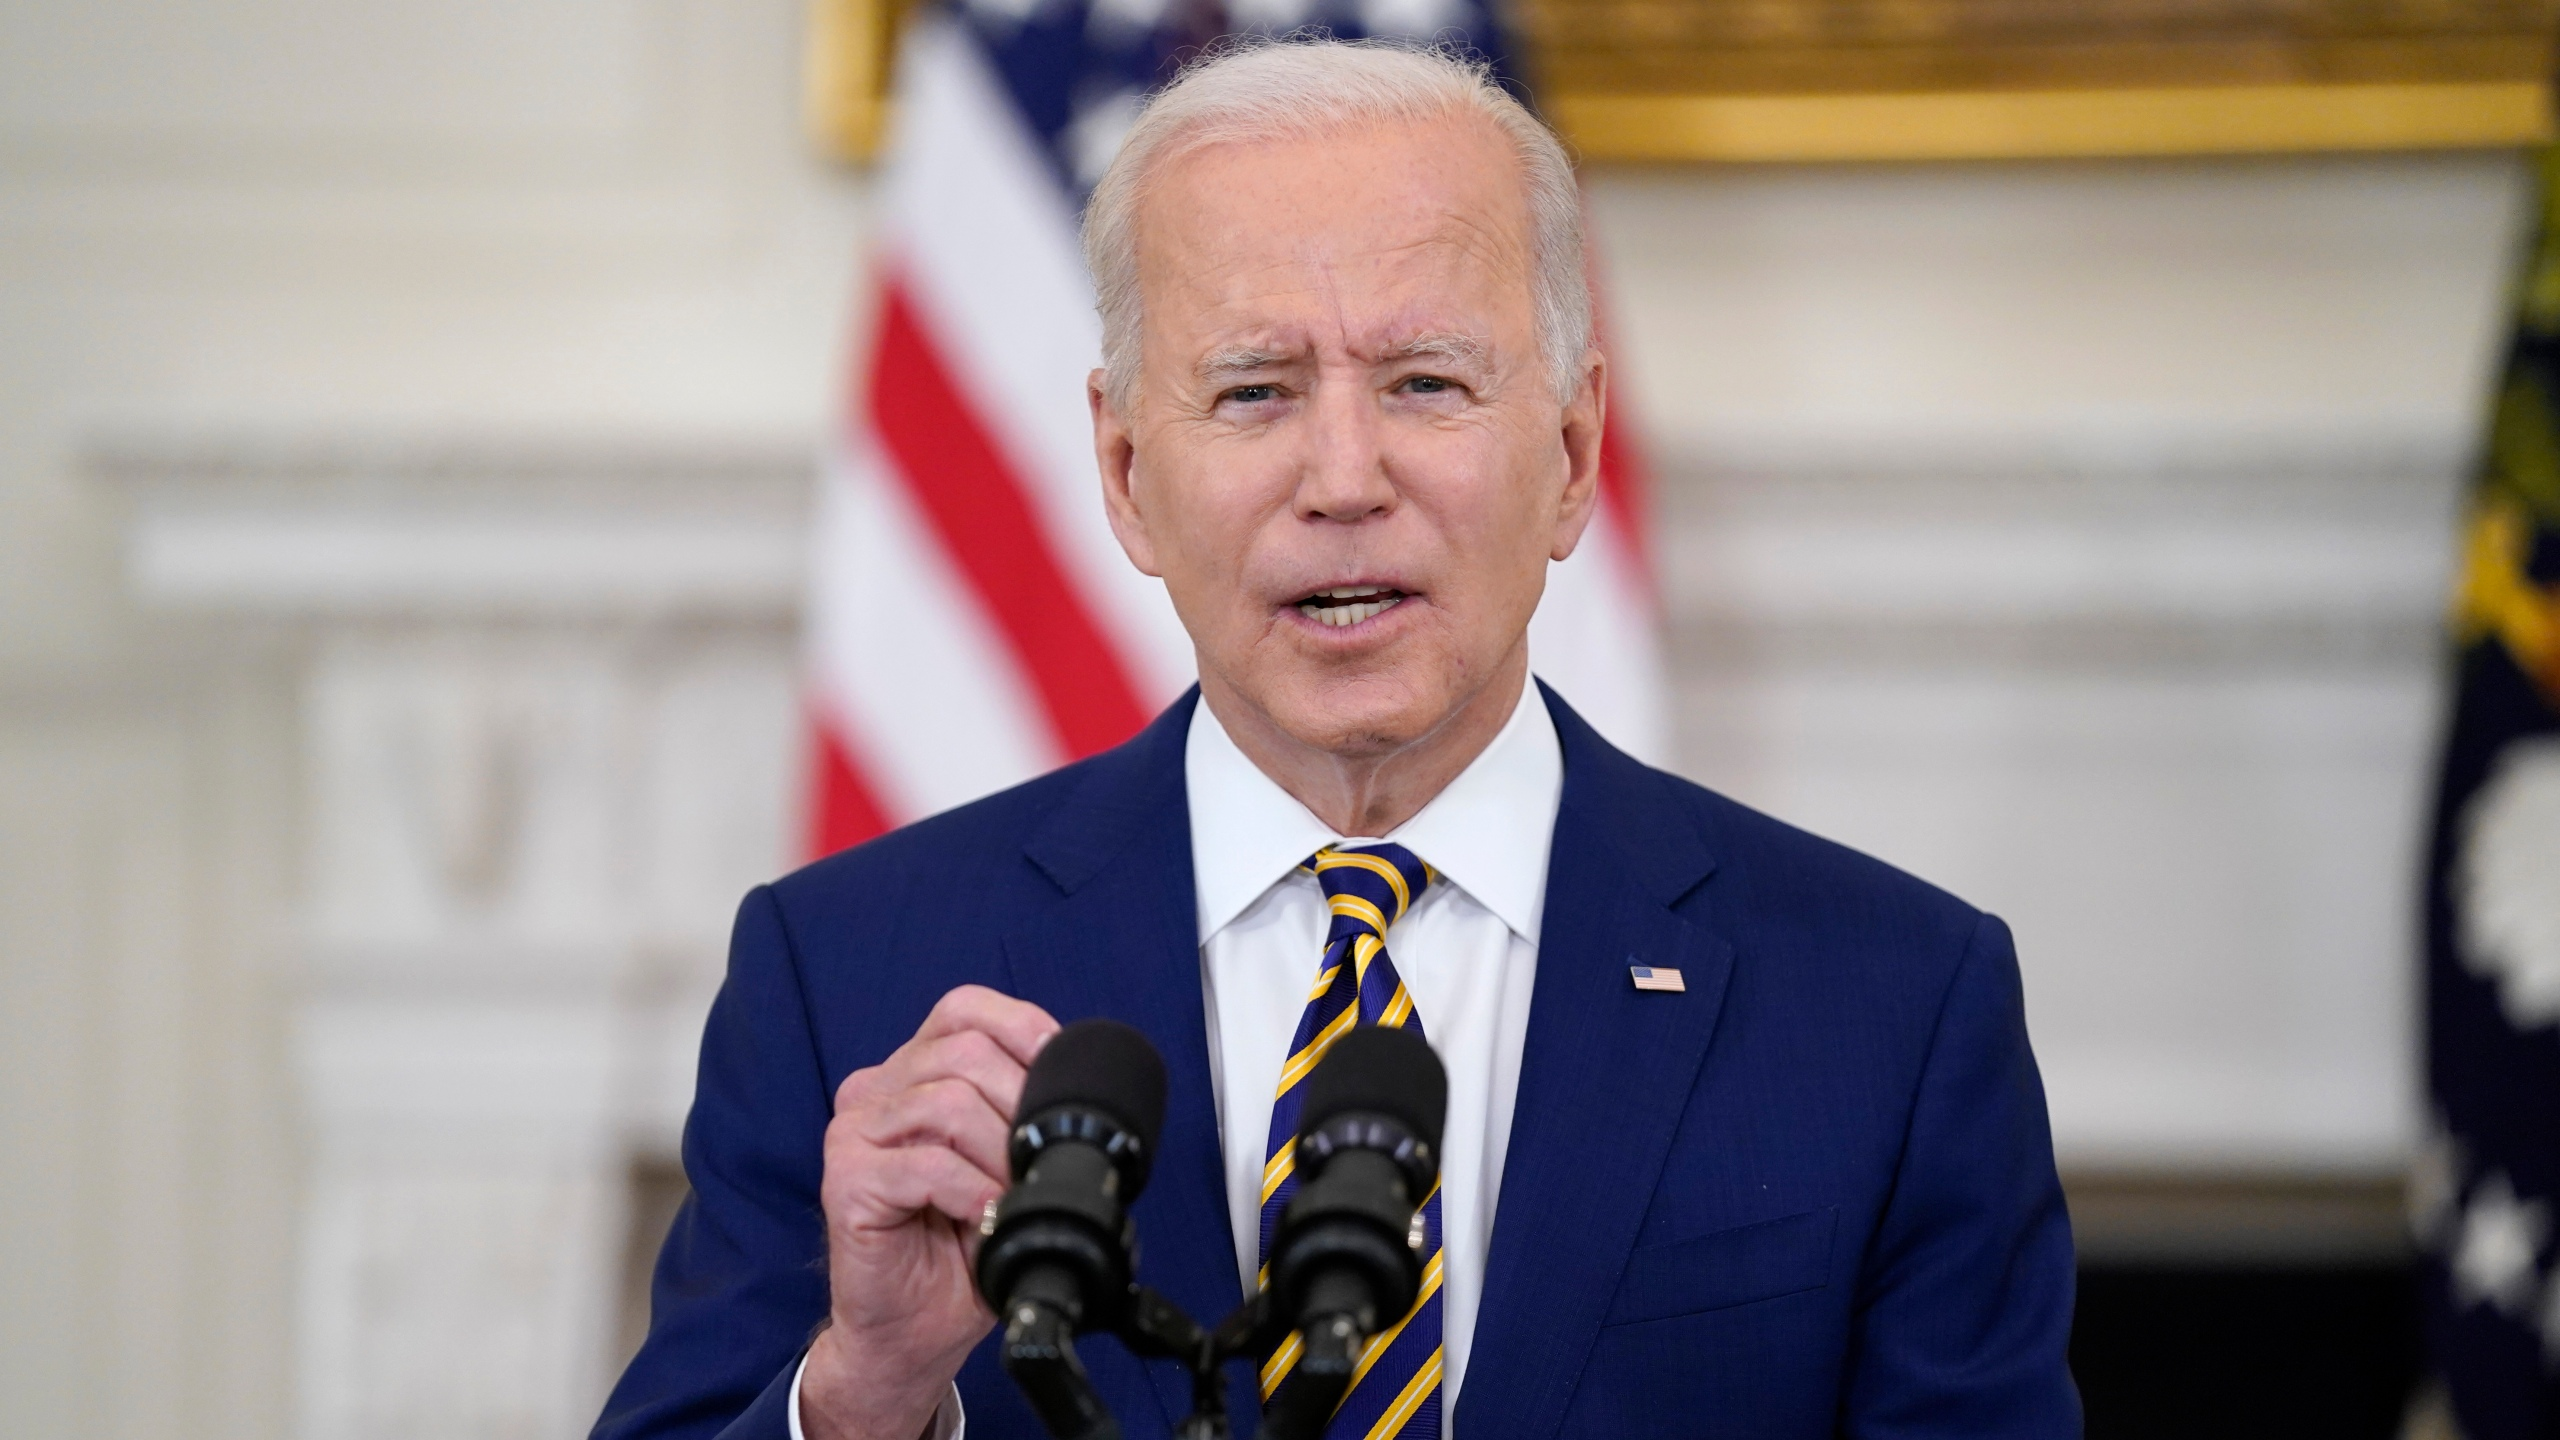 In this June 18, 2021, file photo, President Joe Biden speaks in the State Dining Room of the White House in Washington. (AP Photo/Evan Vucci, File)